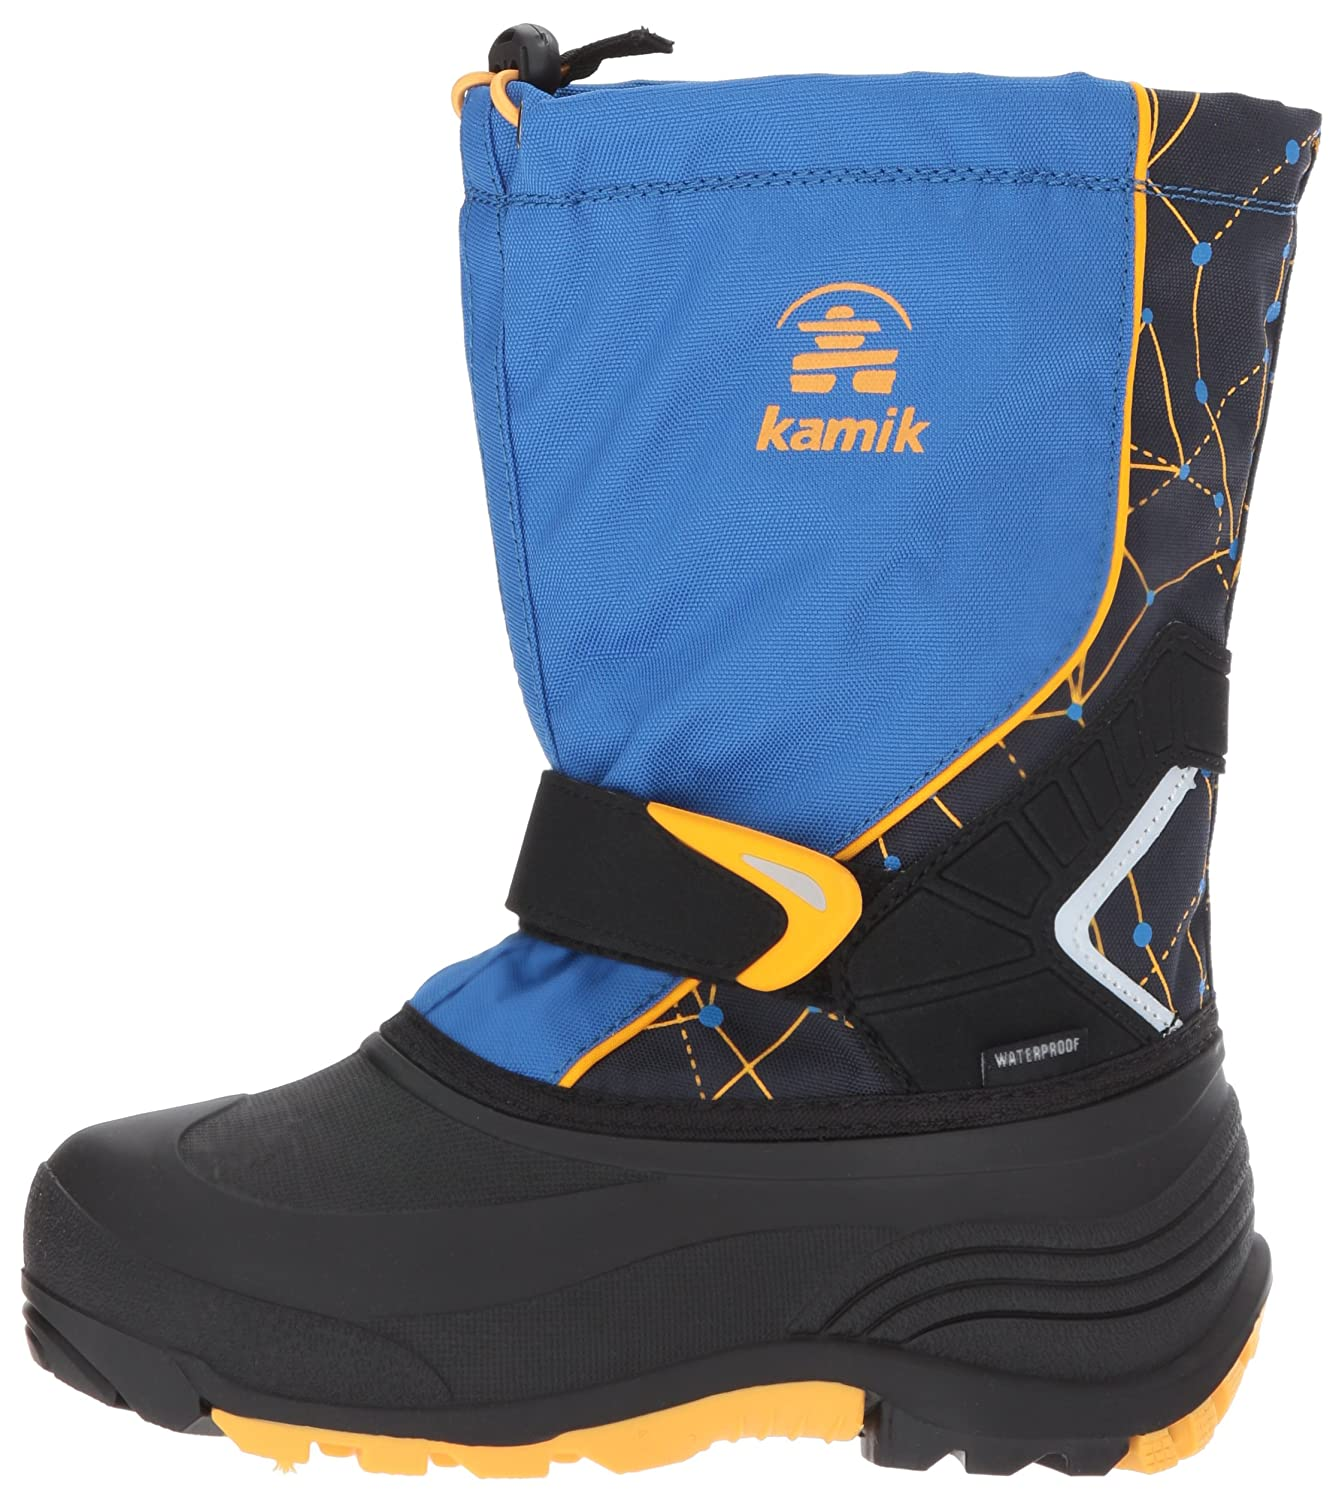 Kamik Kids' Sleet2 Snow Boots, Blue, 9 M US Toddler NK8426S